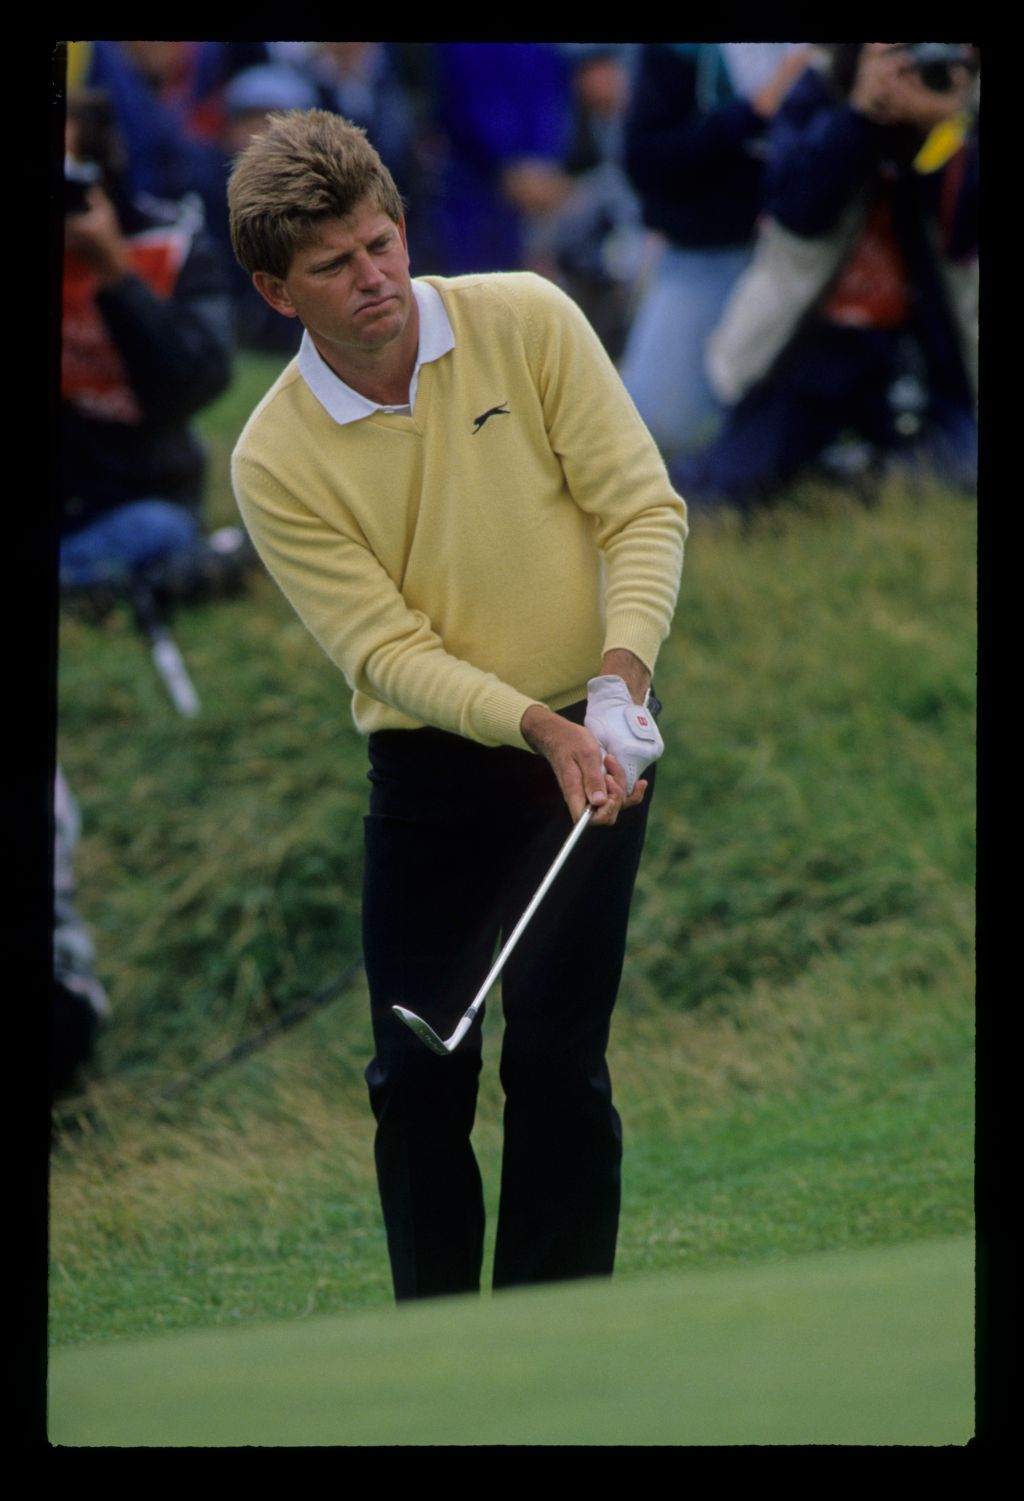 Nick Price chipping to the green on his way to second place at the 1988 Open Championship